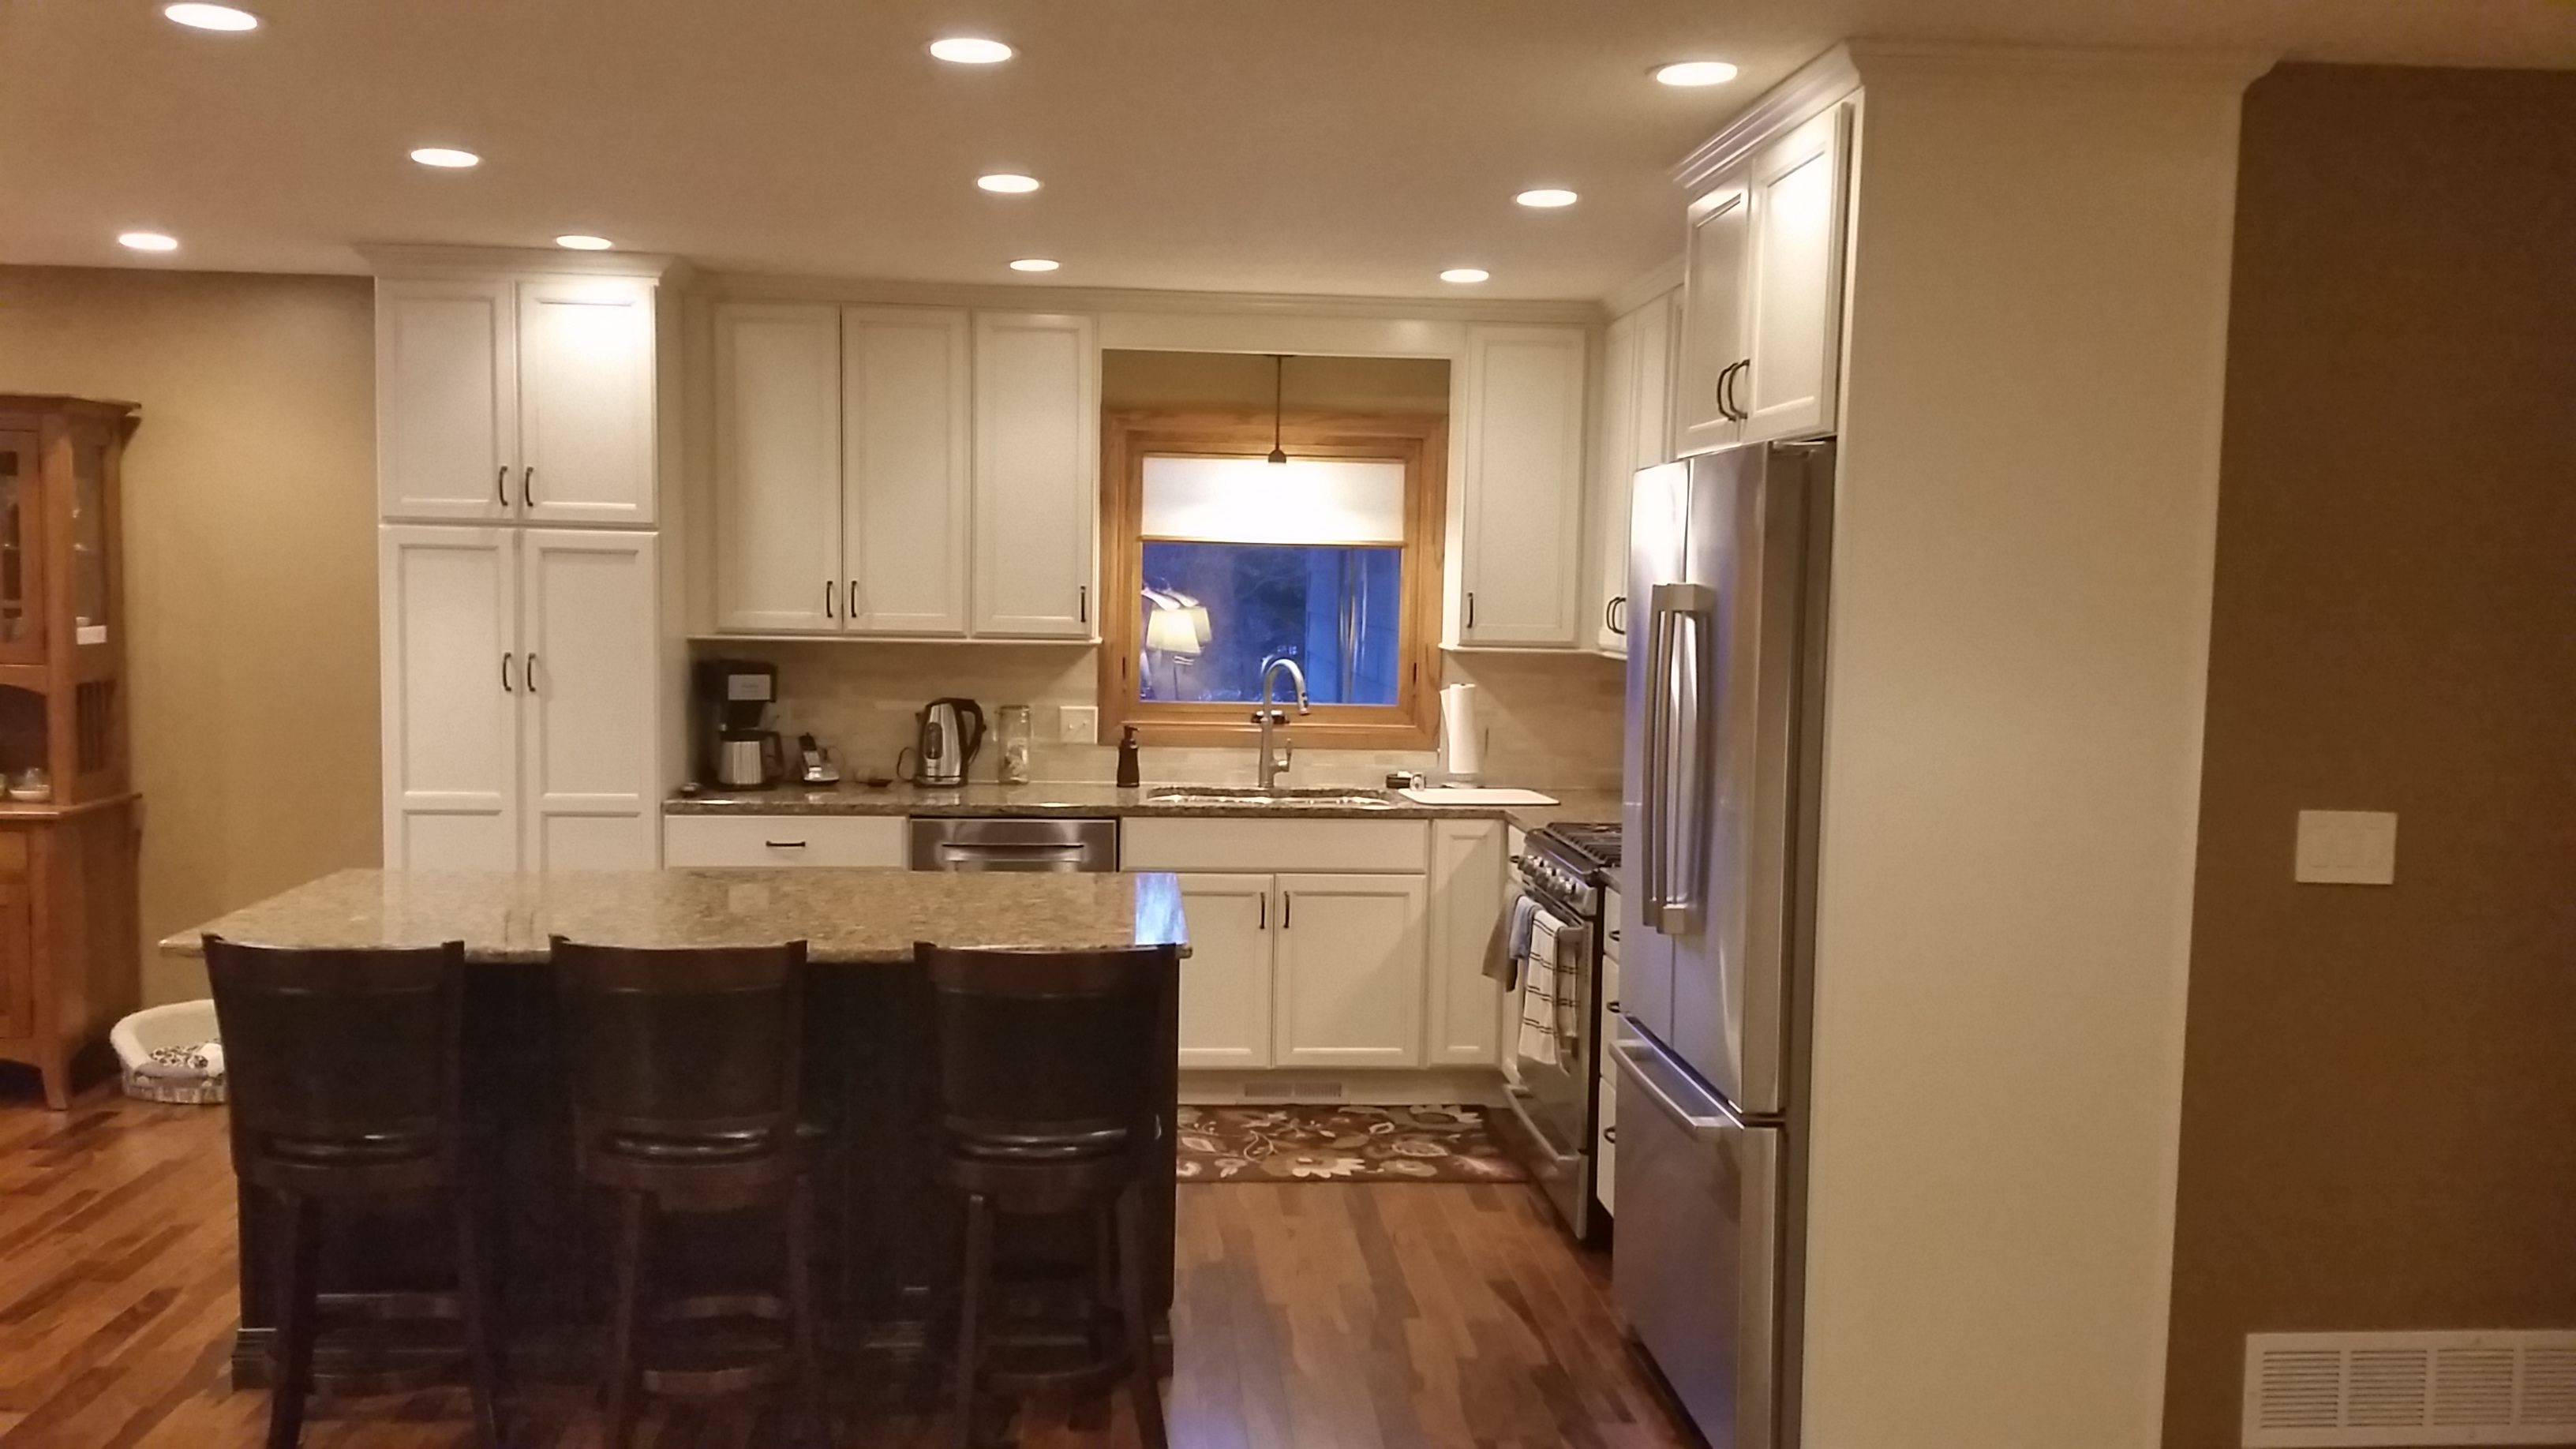 diamond kitchen cabinets Helander Kitchen Diamond Cabinets Maple Hanlon door toasted